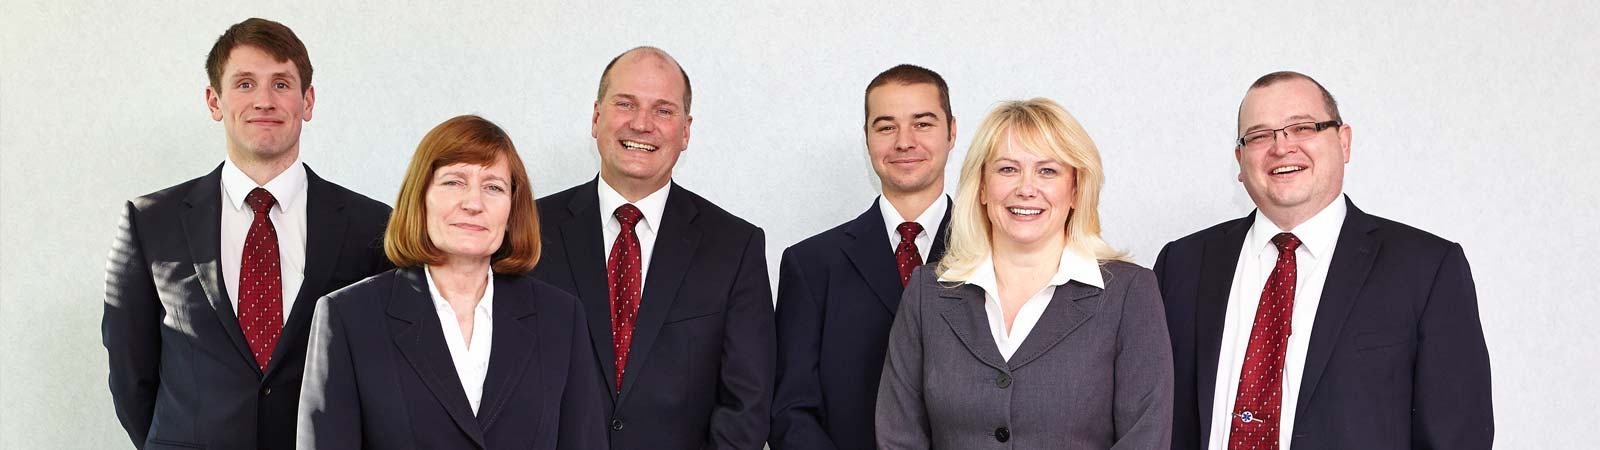 Meet some of the Pryors team